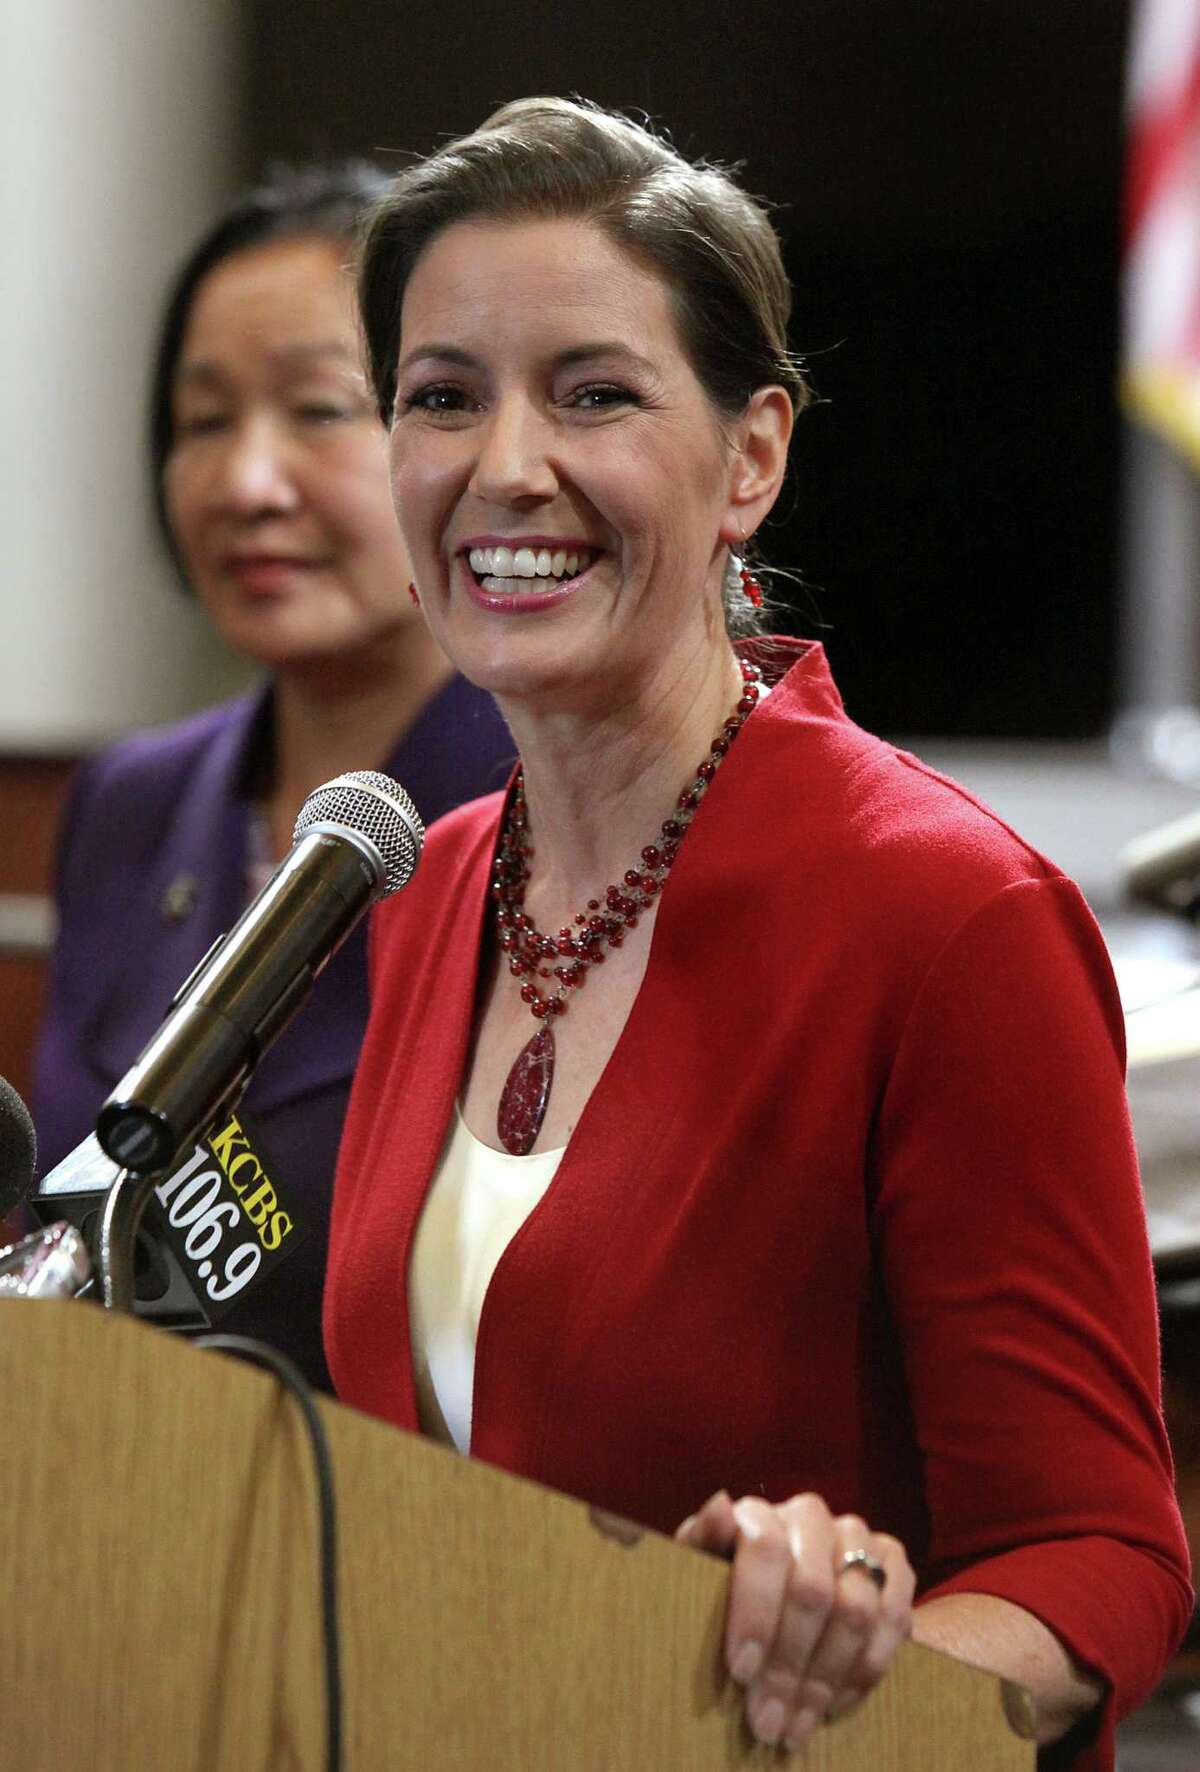 Oakland mayor-elect Libby Schaaf (front) and mayor Jean Quan (back) talk about the upcoming period of transition at a press conference in the city council chambers at city hall in Oakland, Calif., on Thursday, November 6, 2014.